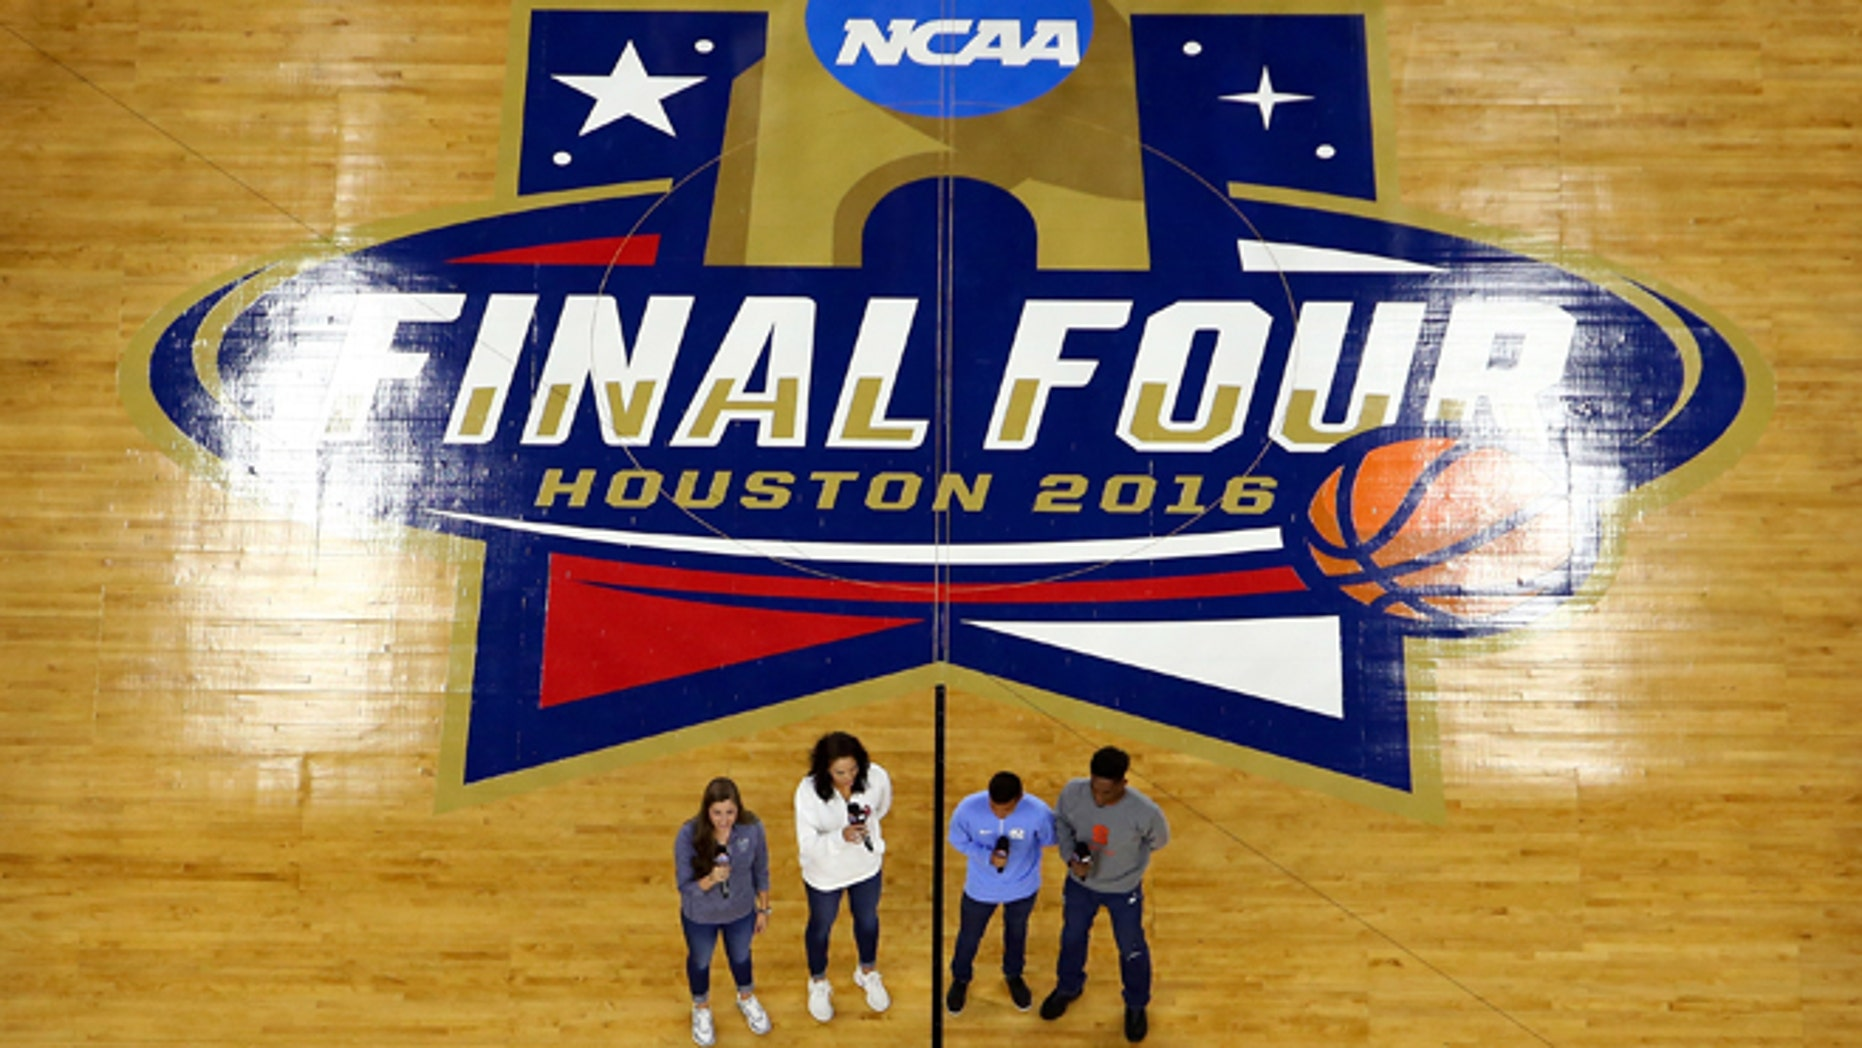 HOUSTON, TEXAS - APRIL 02:  (L-R) Villanova Wildcats womenâs basketball player Karlie Crispin, Oklahoma Sooners womenâs volleyball player Madison Ward, North Carolina Tar Heels menâs soccer player Nico Melo, and Syracuse Orange menâs track and field athlete Chevis Armstead II perform the national anthem prior to the NCAA Men's Final Four Semifinal between the Villanova Wildcats and the Oklahoma Sooners at NRG Stadium on April 2, 2016 in Houston, Texas.  (Photo by Streeter Lecka/Getty Images)